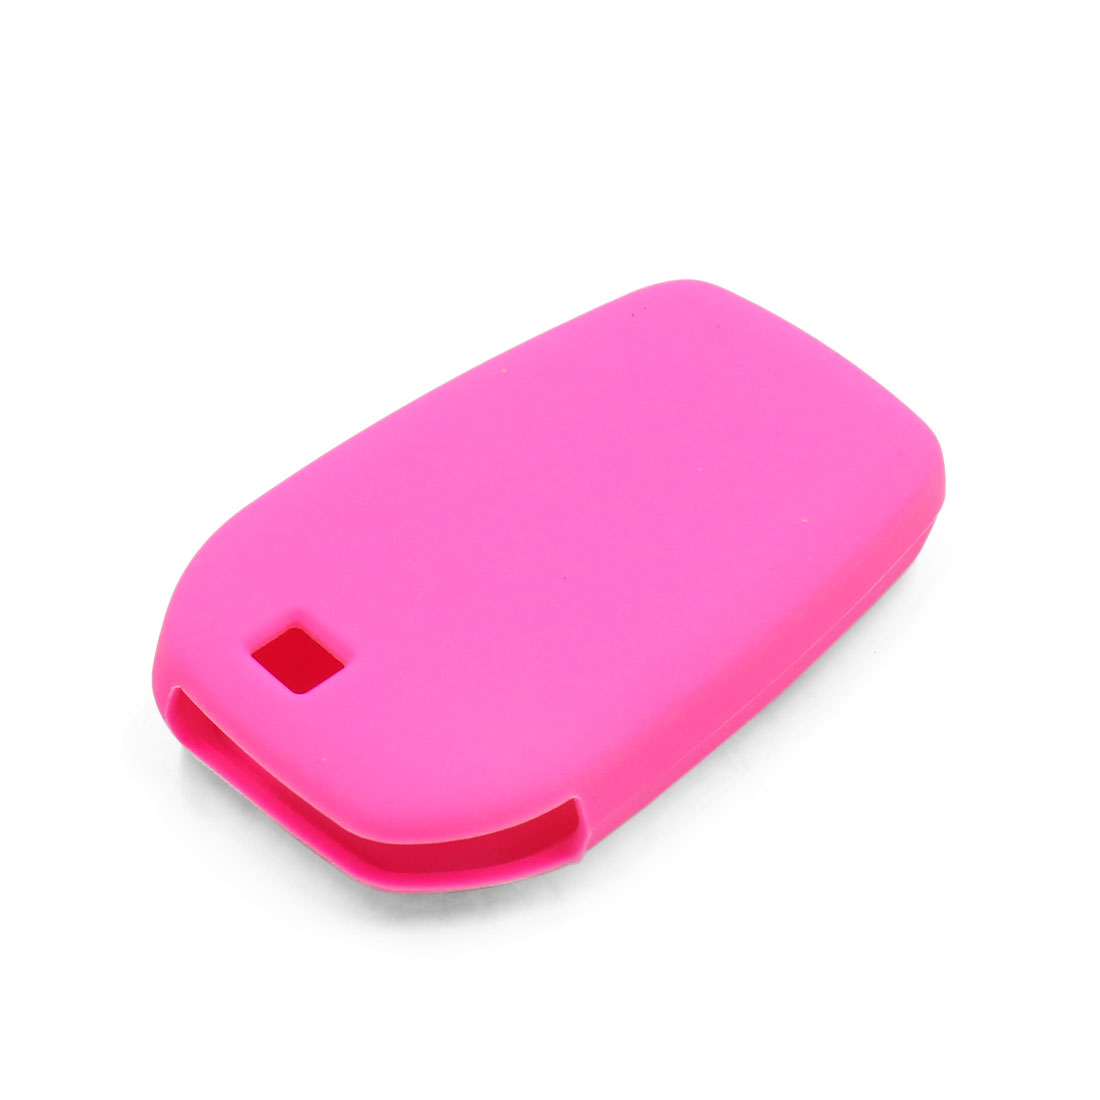 Pink Silicone Car Remote Key Fob Cover Case for Toyota Crown Camry Corolla RAV4 - image 2 of 3